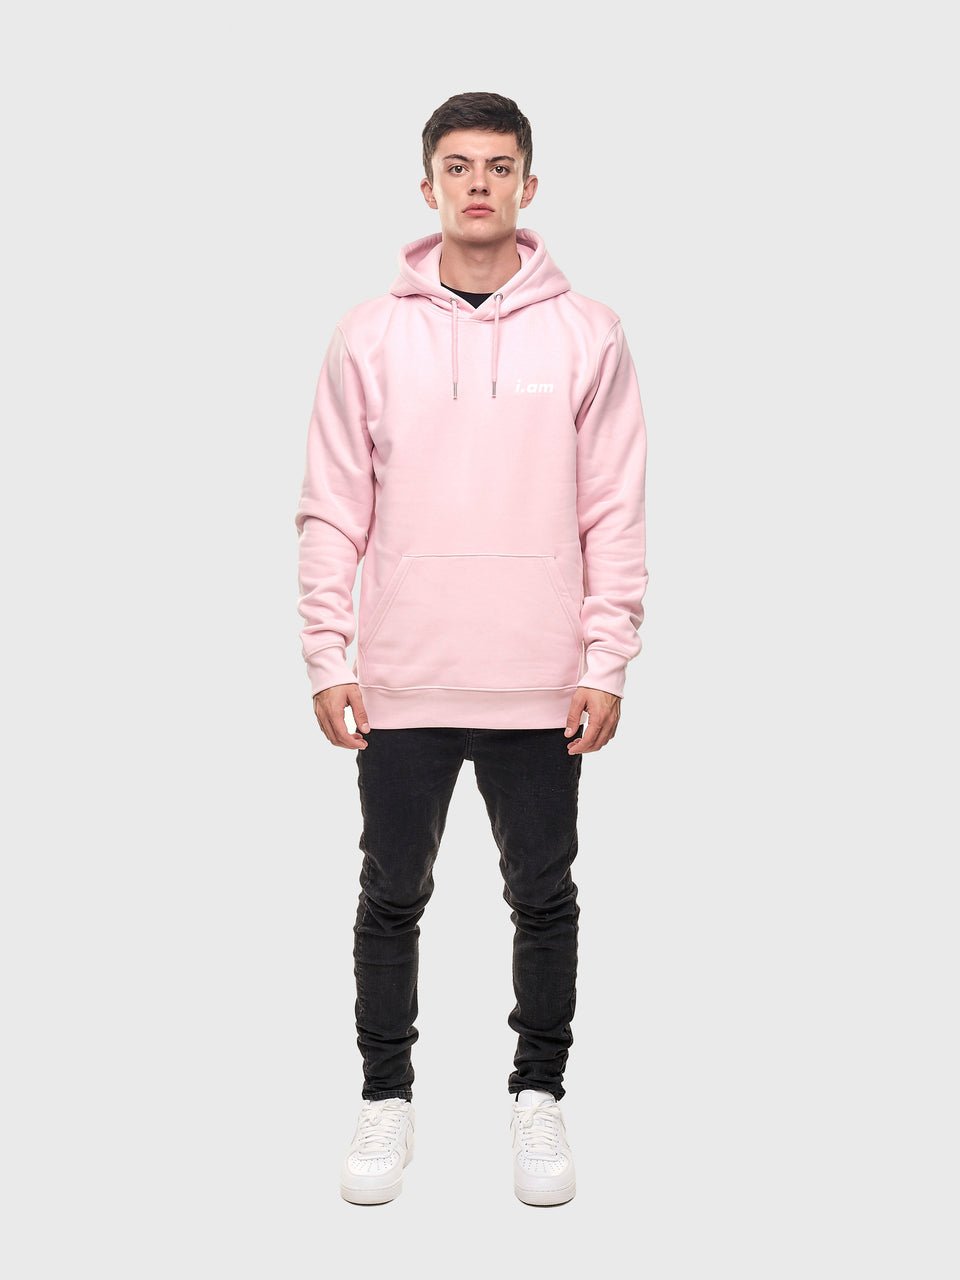 Not your baby - Pink - unisex pull over hoodie